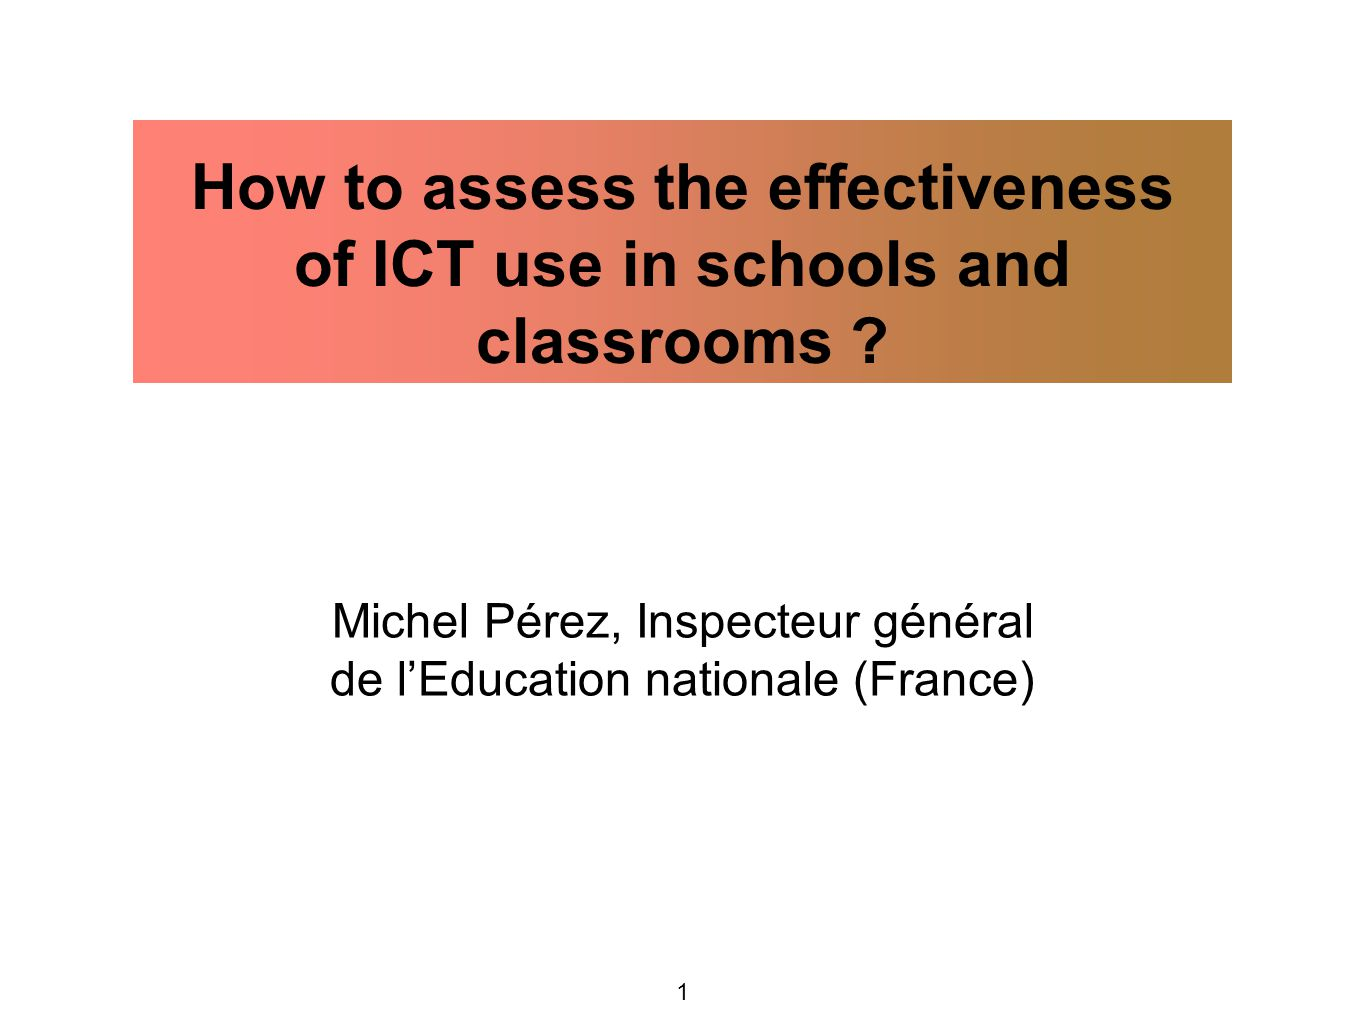 1 Michel Pérez, Inspecteur général de l'Education nationale (France) How to assess the effectiveness of ICT use in schools and classrooms